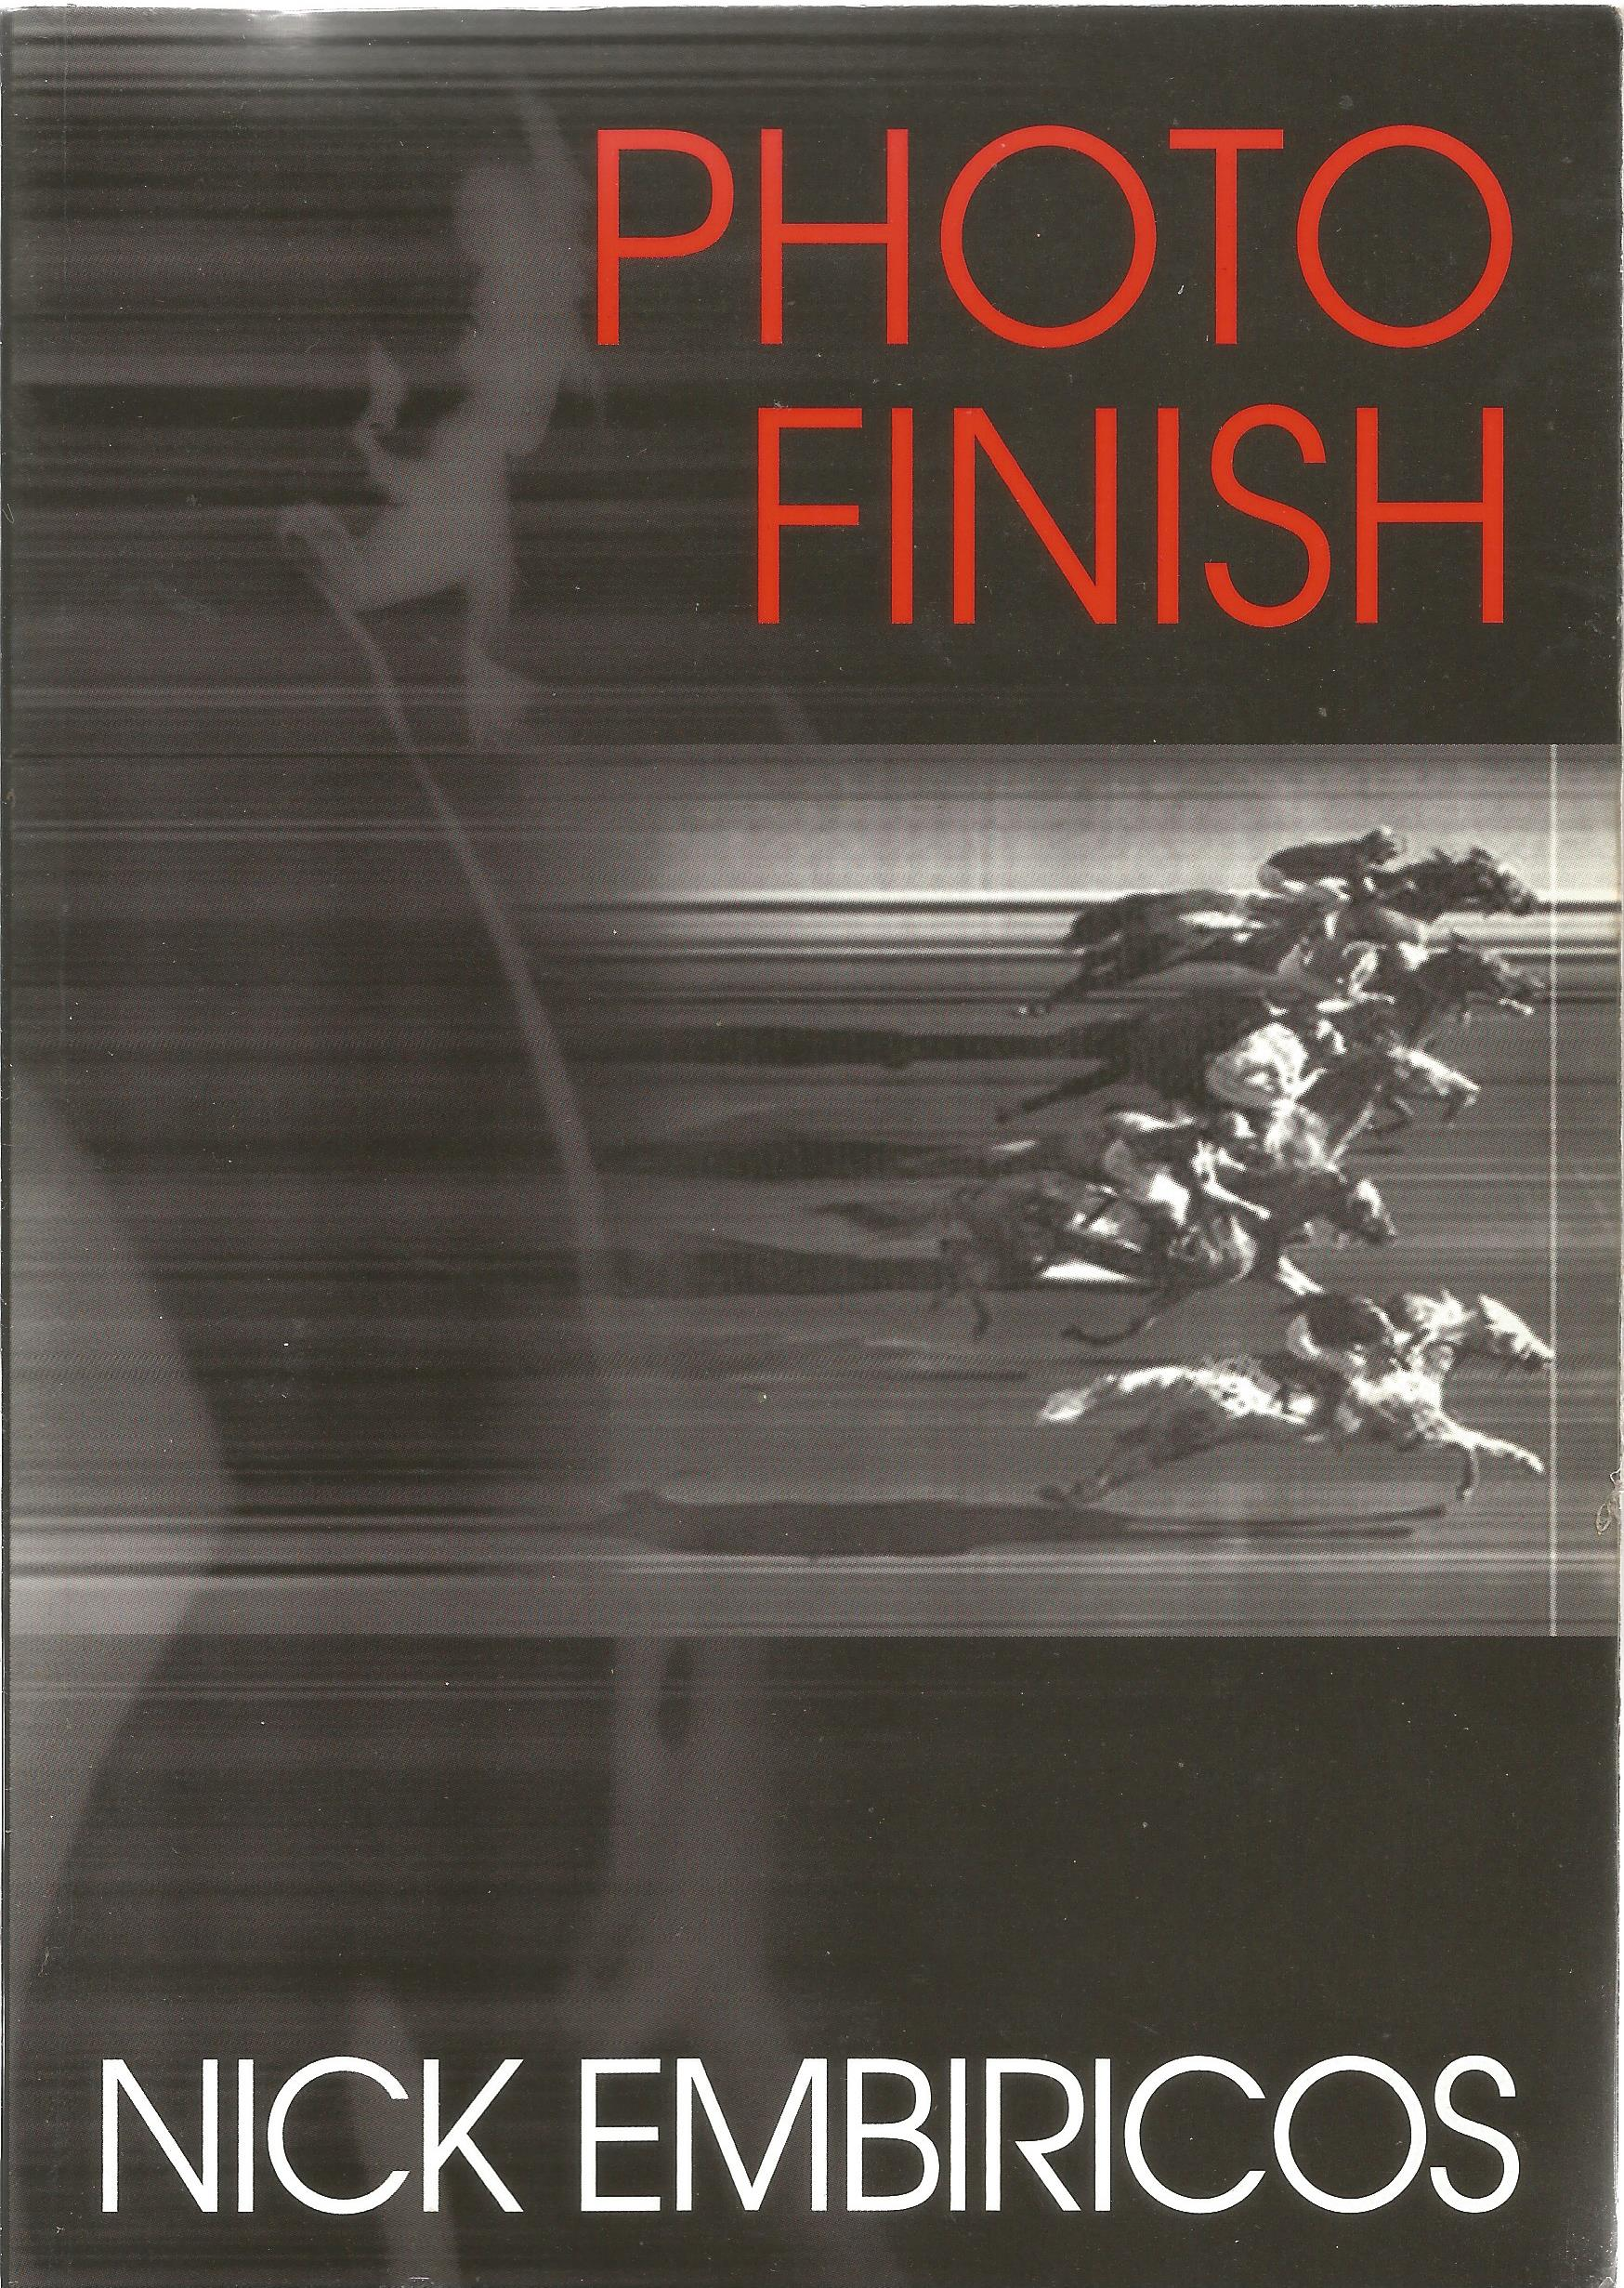 Nick Embiricos Paperback Book Photo Finish signed by the Author on the Title Page First Edition also